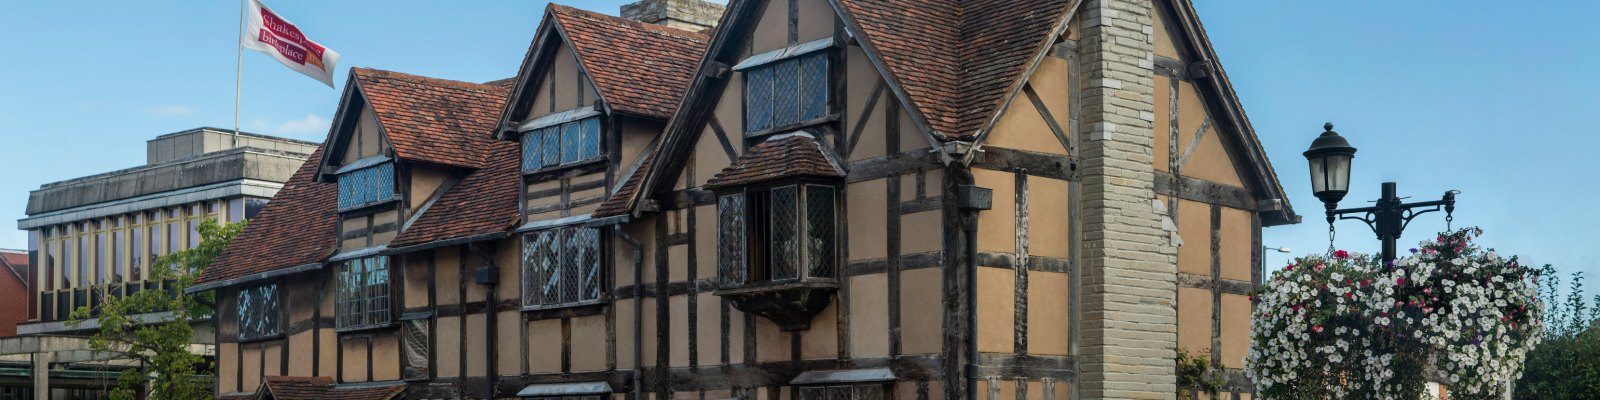 Shakespeare's home, Stratford-upon-avon